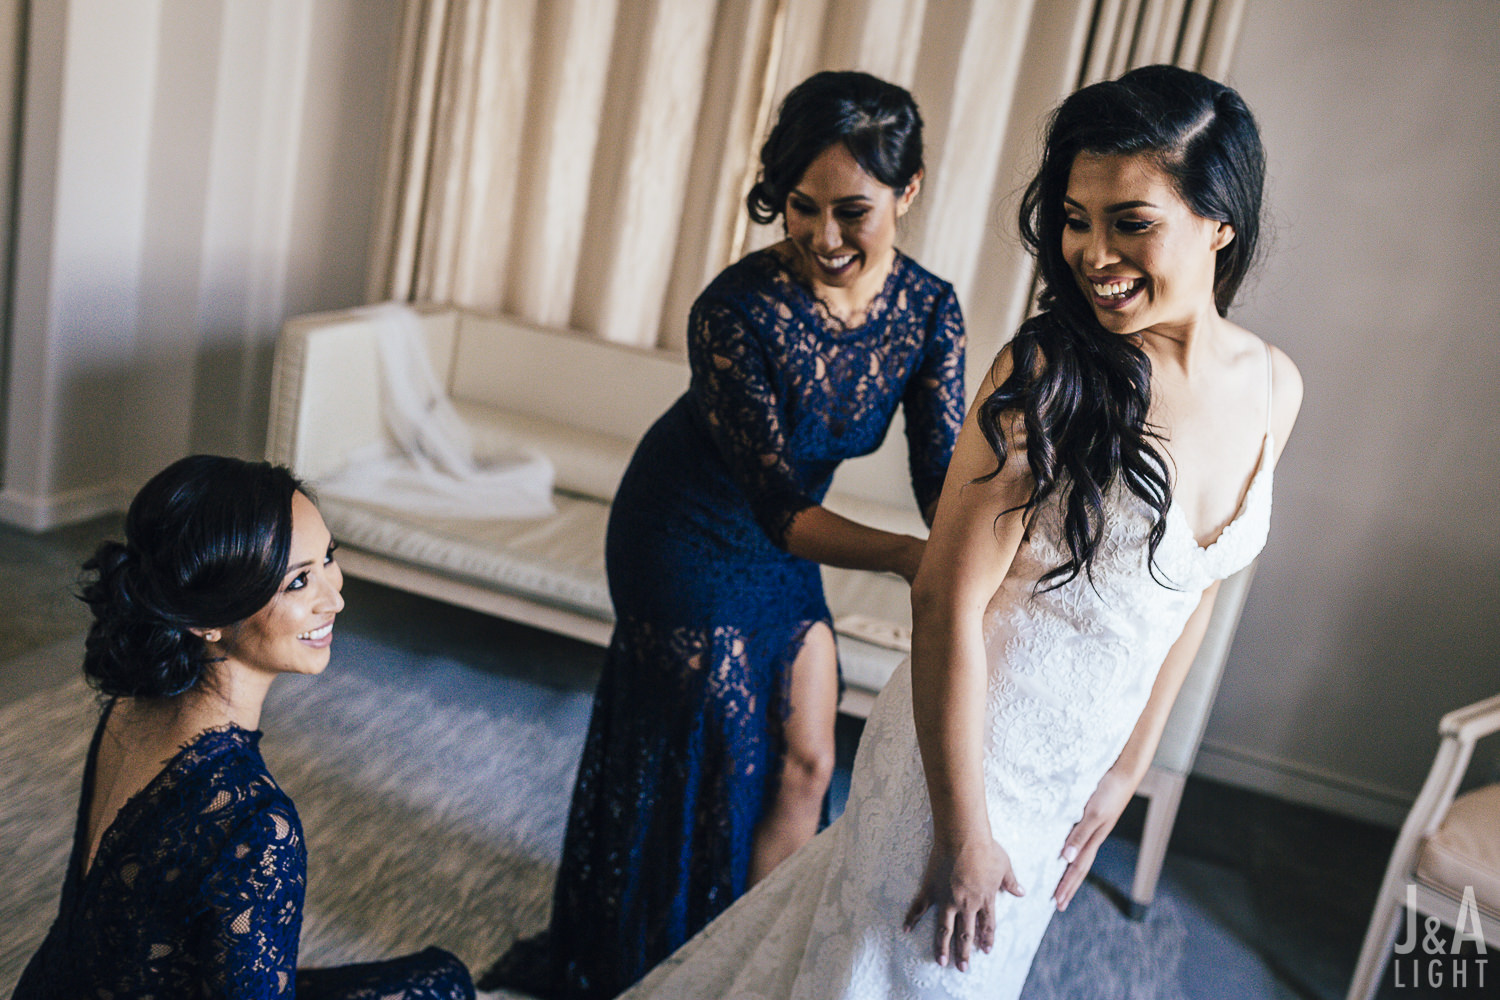 20160319-CatJey-1300FillmoreWedding-014.jpg